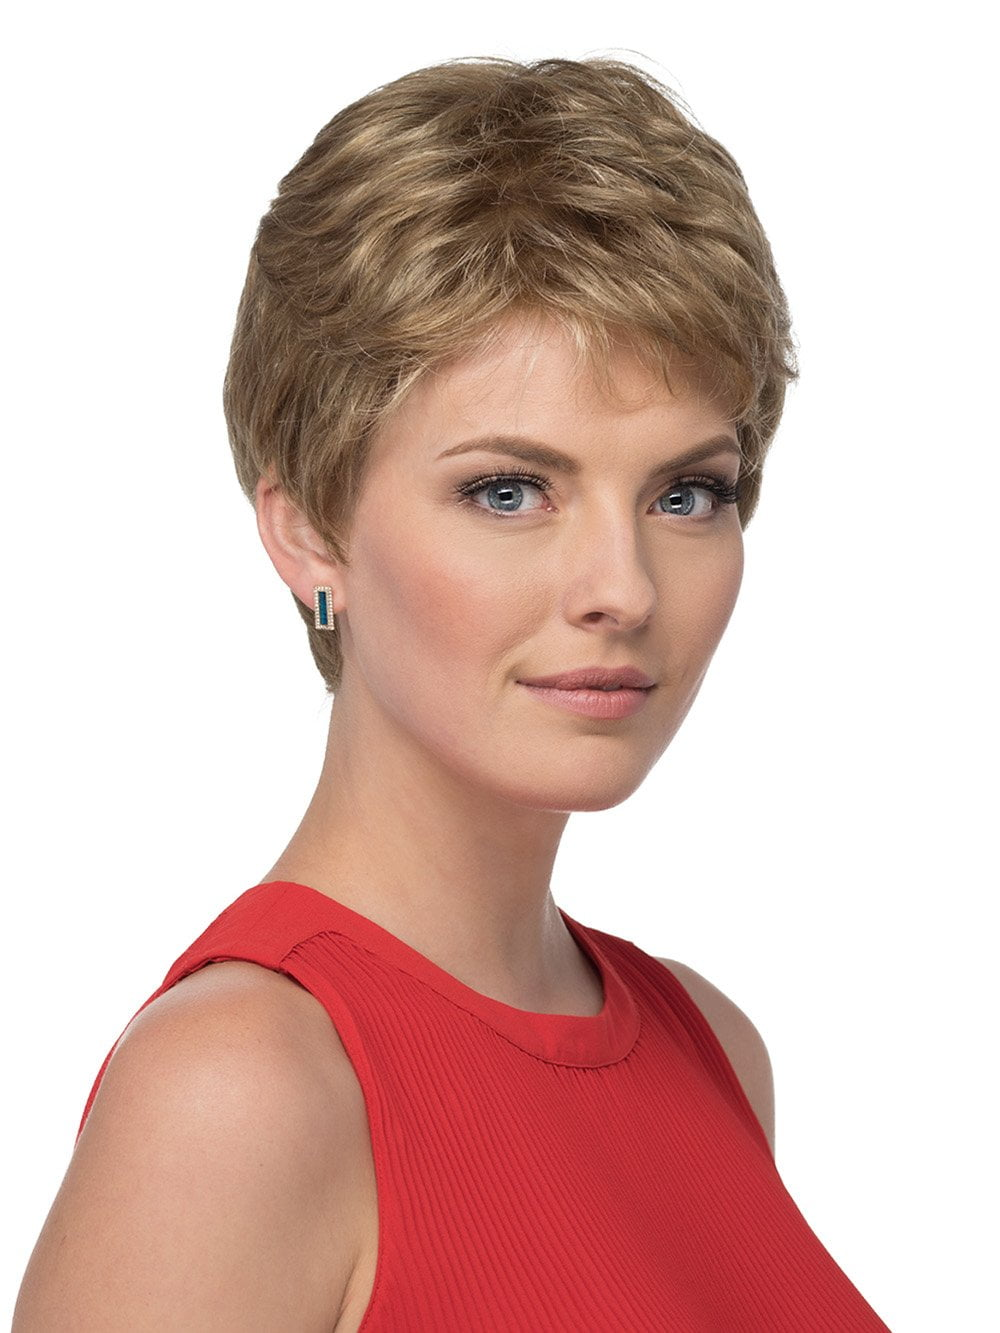 Short Pixie Cut with Tapered Nape